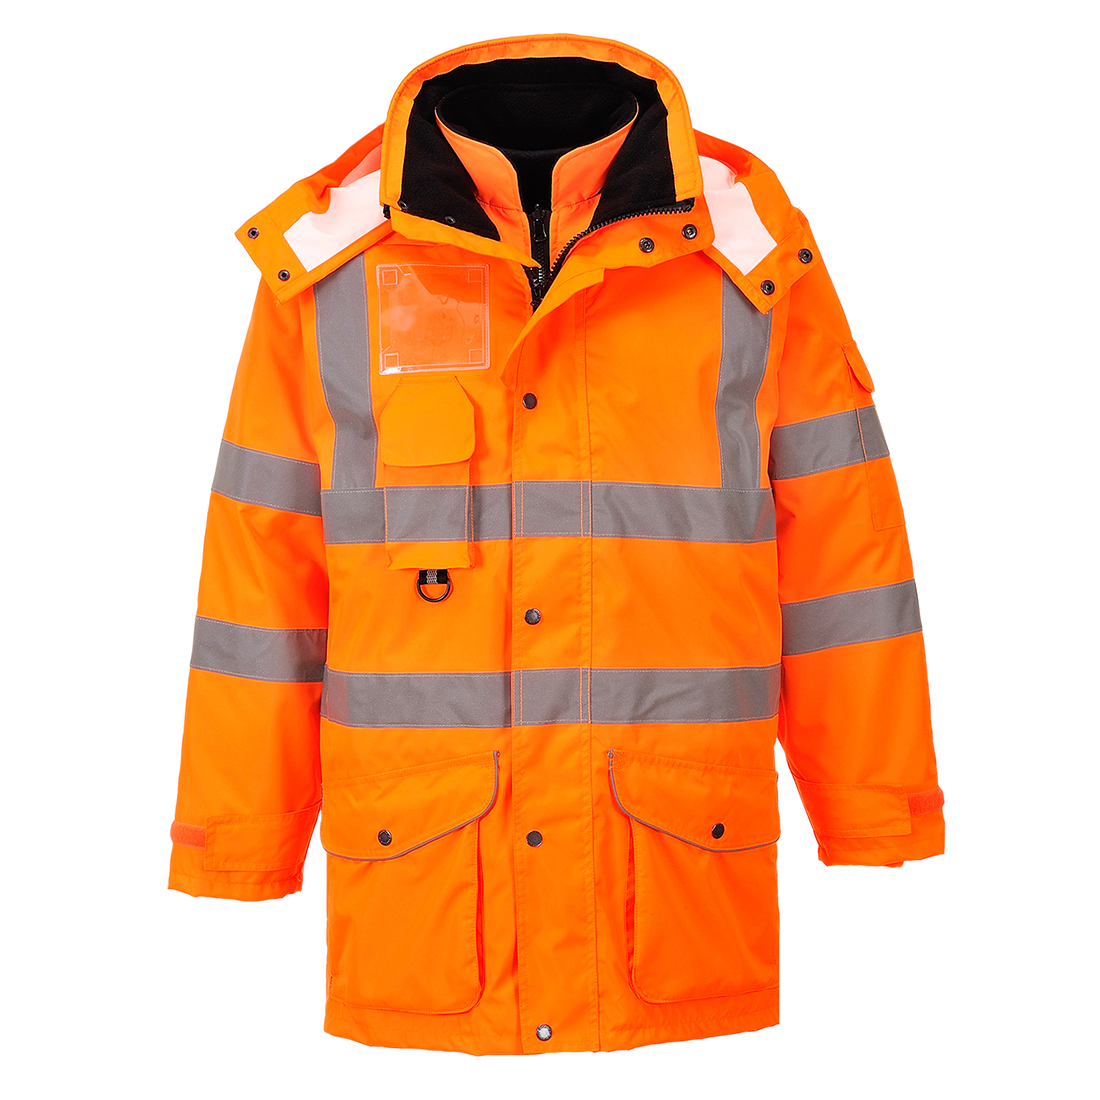 244df508 Portwest RT27 7 in 1 Rail Jacket - All Clothing & Protection ...